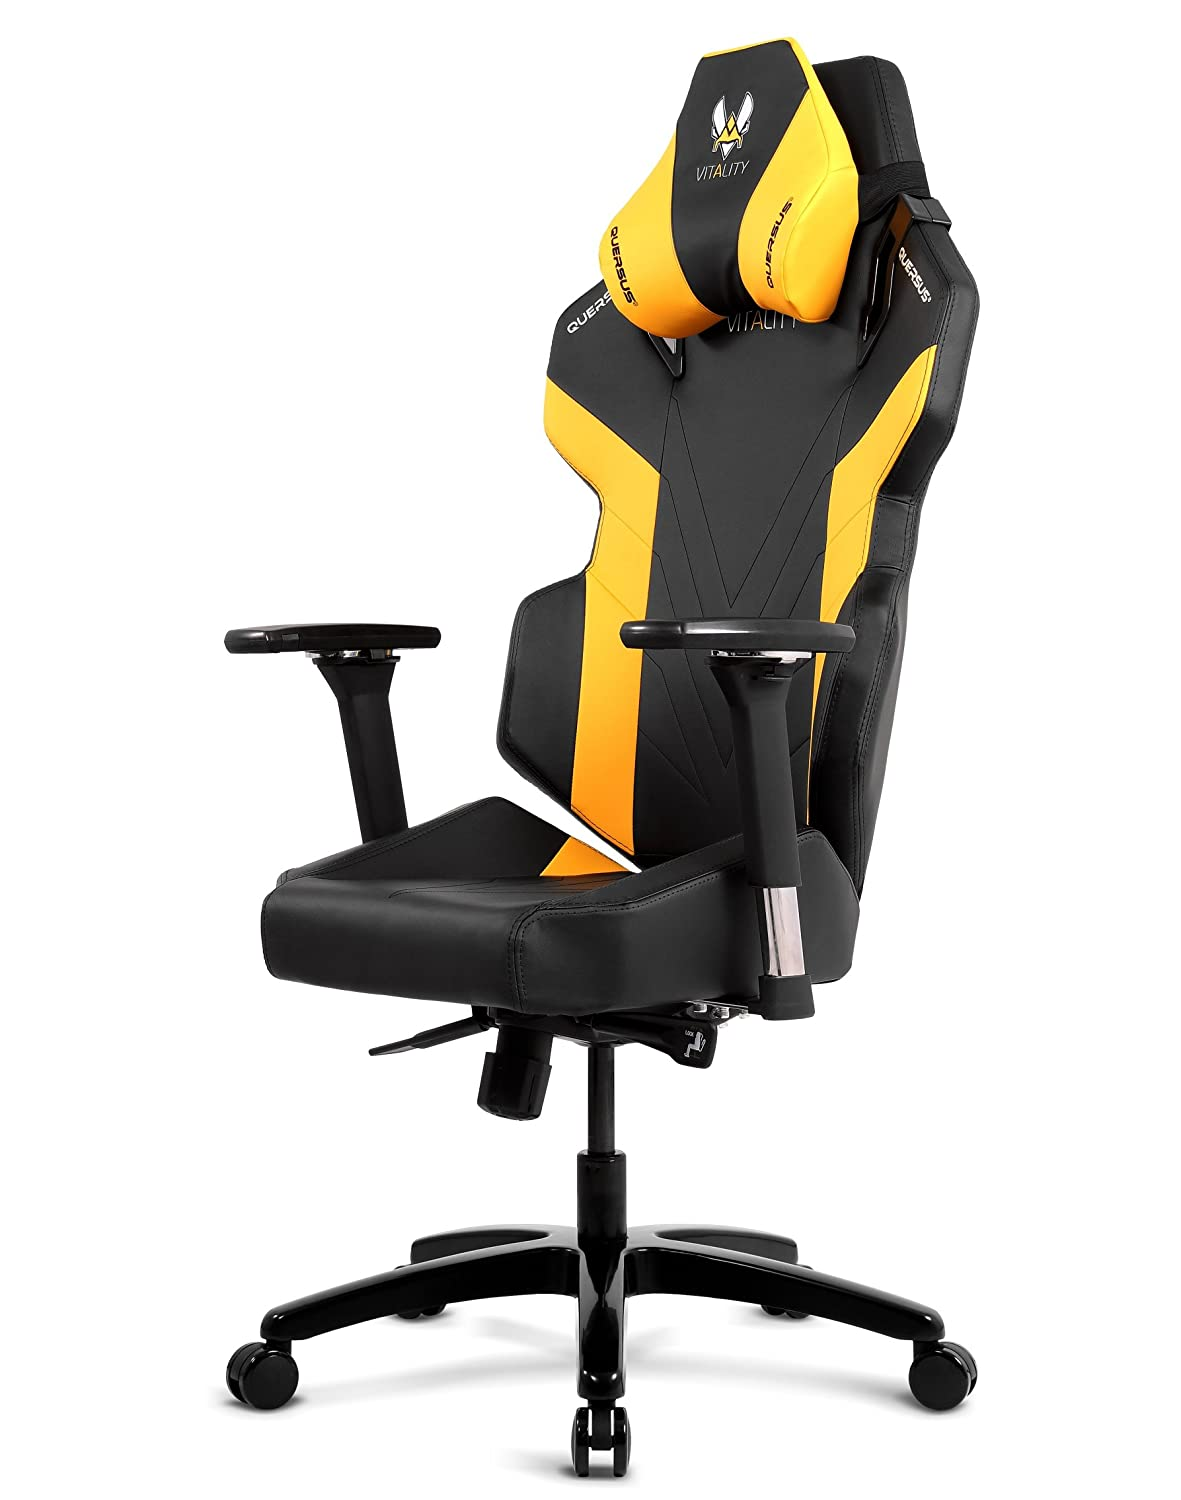 Vitality Chaise De Quersus Bureaugaming EvosCuisine W29YIDEbeH